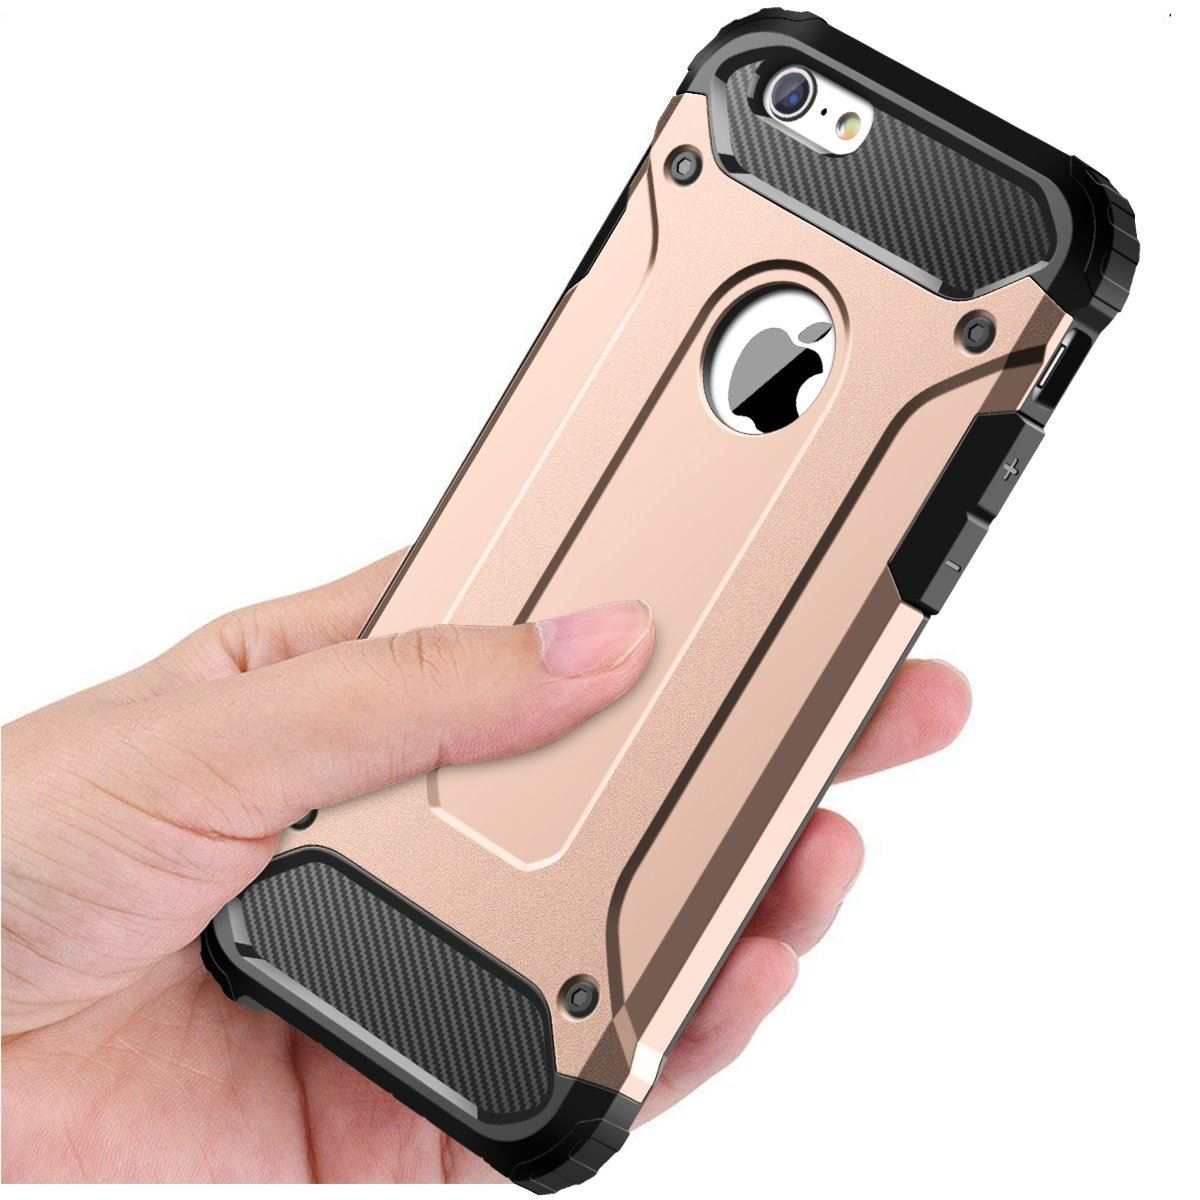 Hybrid-Armor-Shockproof-Rugged-Bumper-Case-For-Apple-iPhone-10-X-8-7-Plus-6s-5s miniature 37